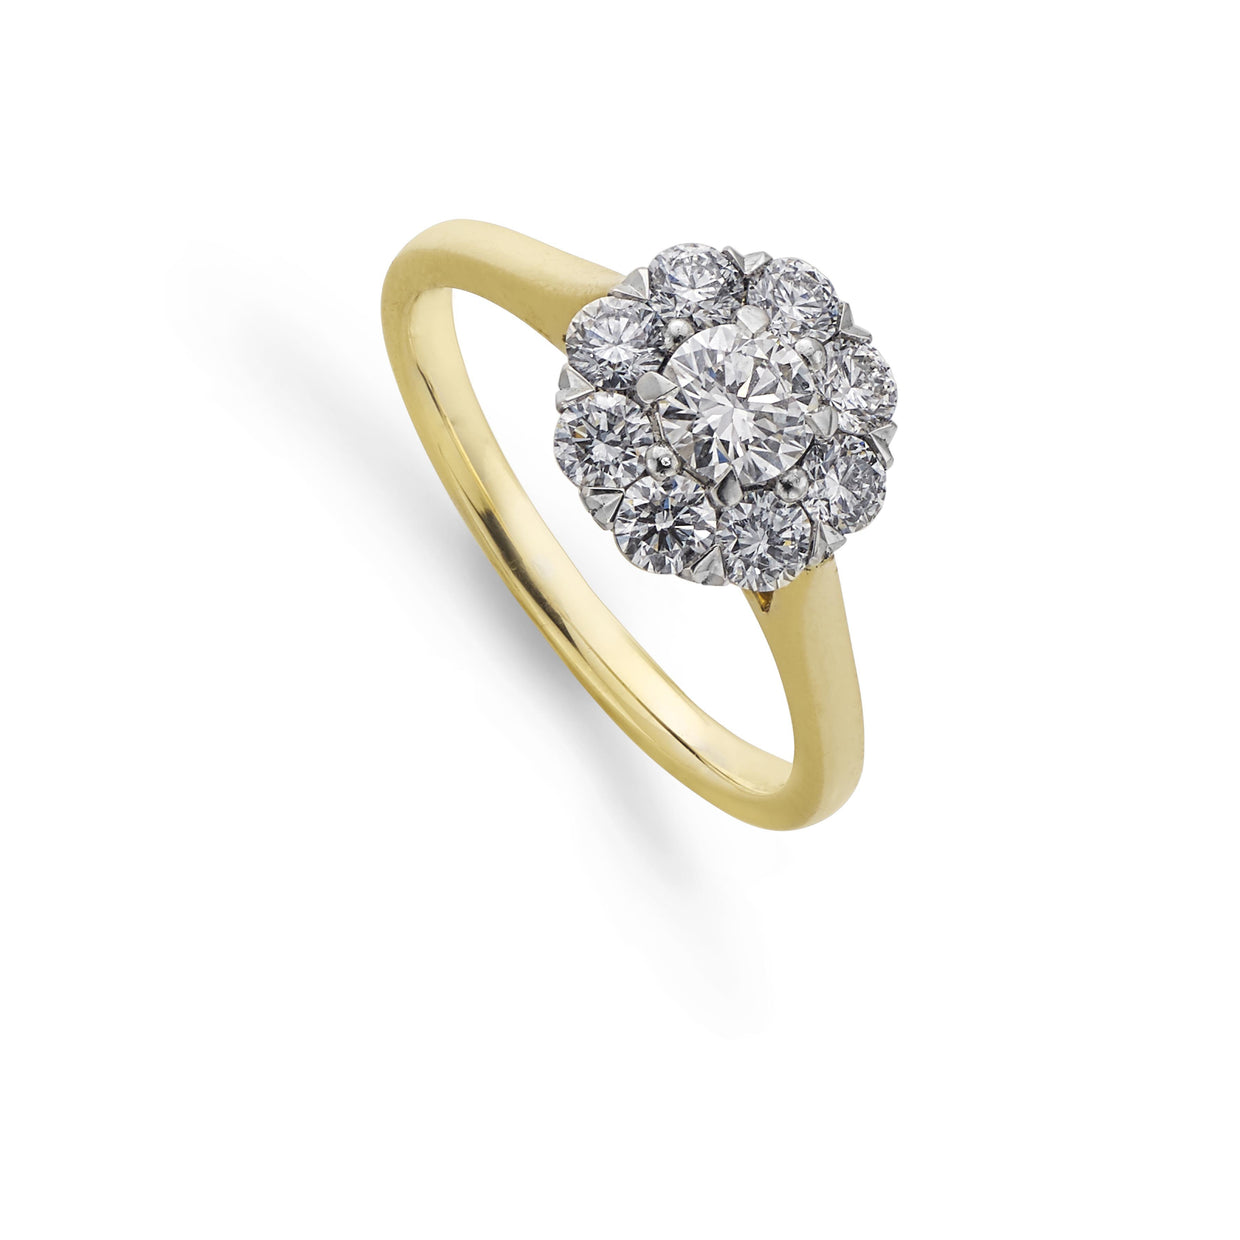 Nine Diamond Cluster Ring in 18ct Yellow Gold - Hamilton & Inches